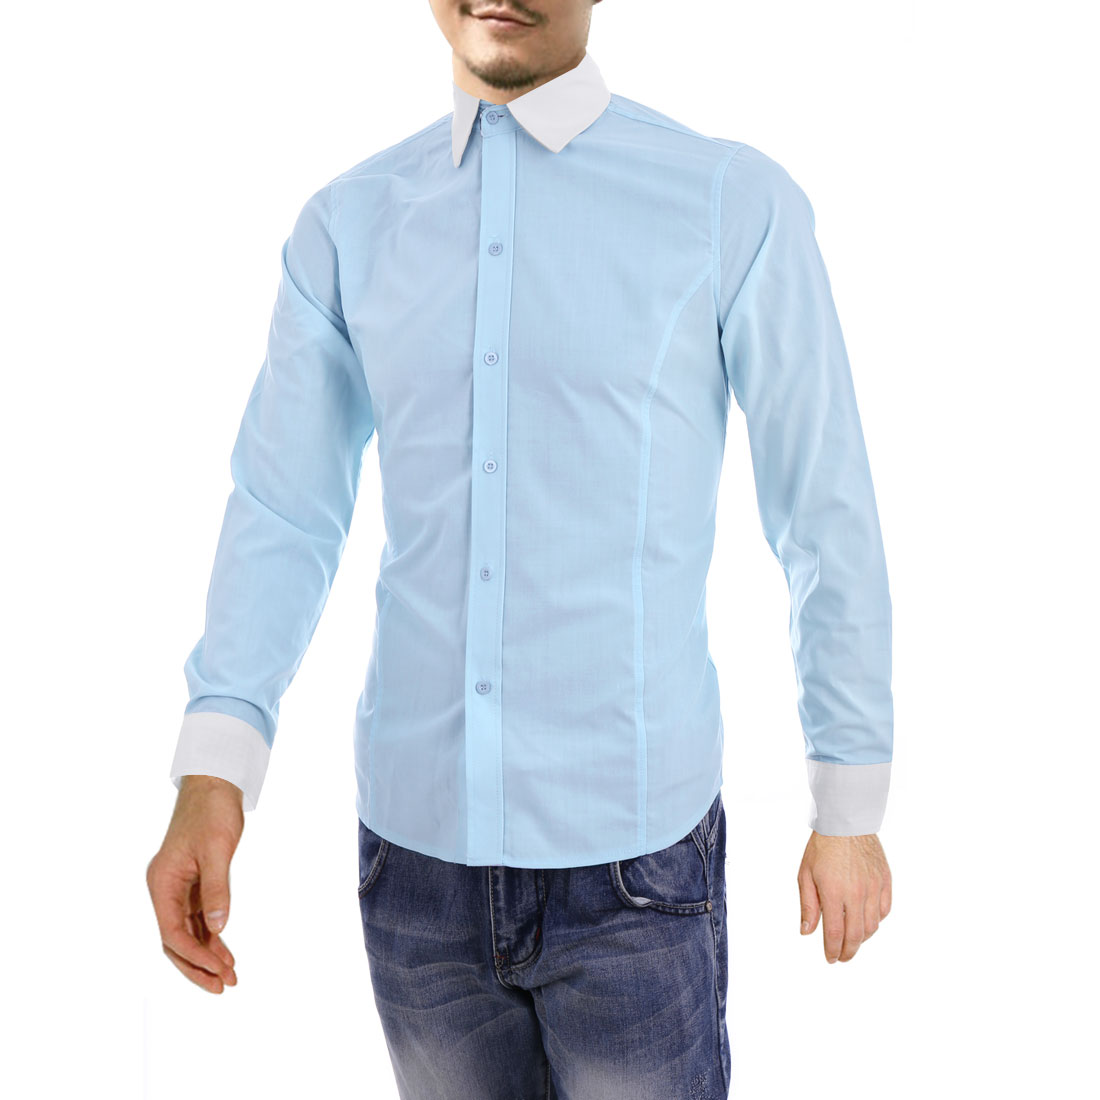 Men Point Collar Round Hem Fashion Shirt Baby Blue M